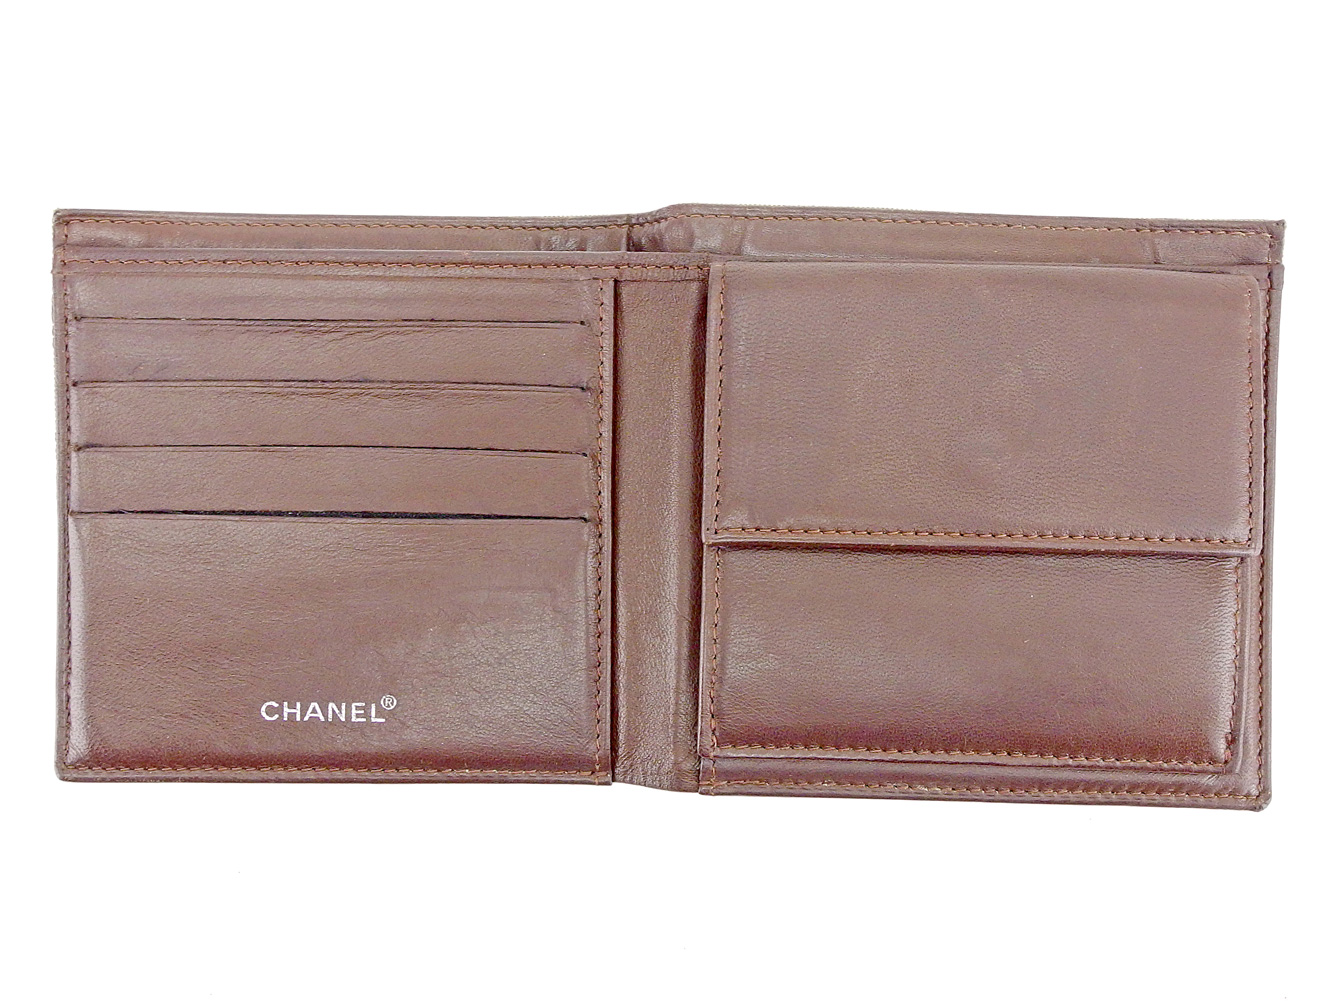 f73a1edc6f1170 Chanel CHANEL folio wallet wallet men's possible current style bell line  brown nylon jacquard X calf folio wallet T6558s.